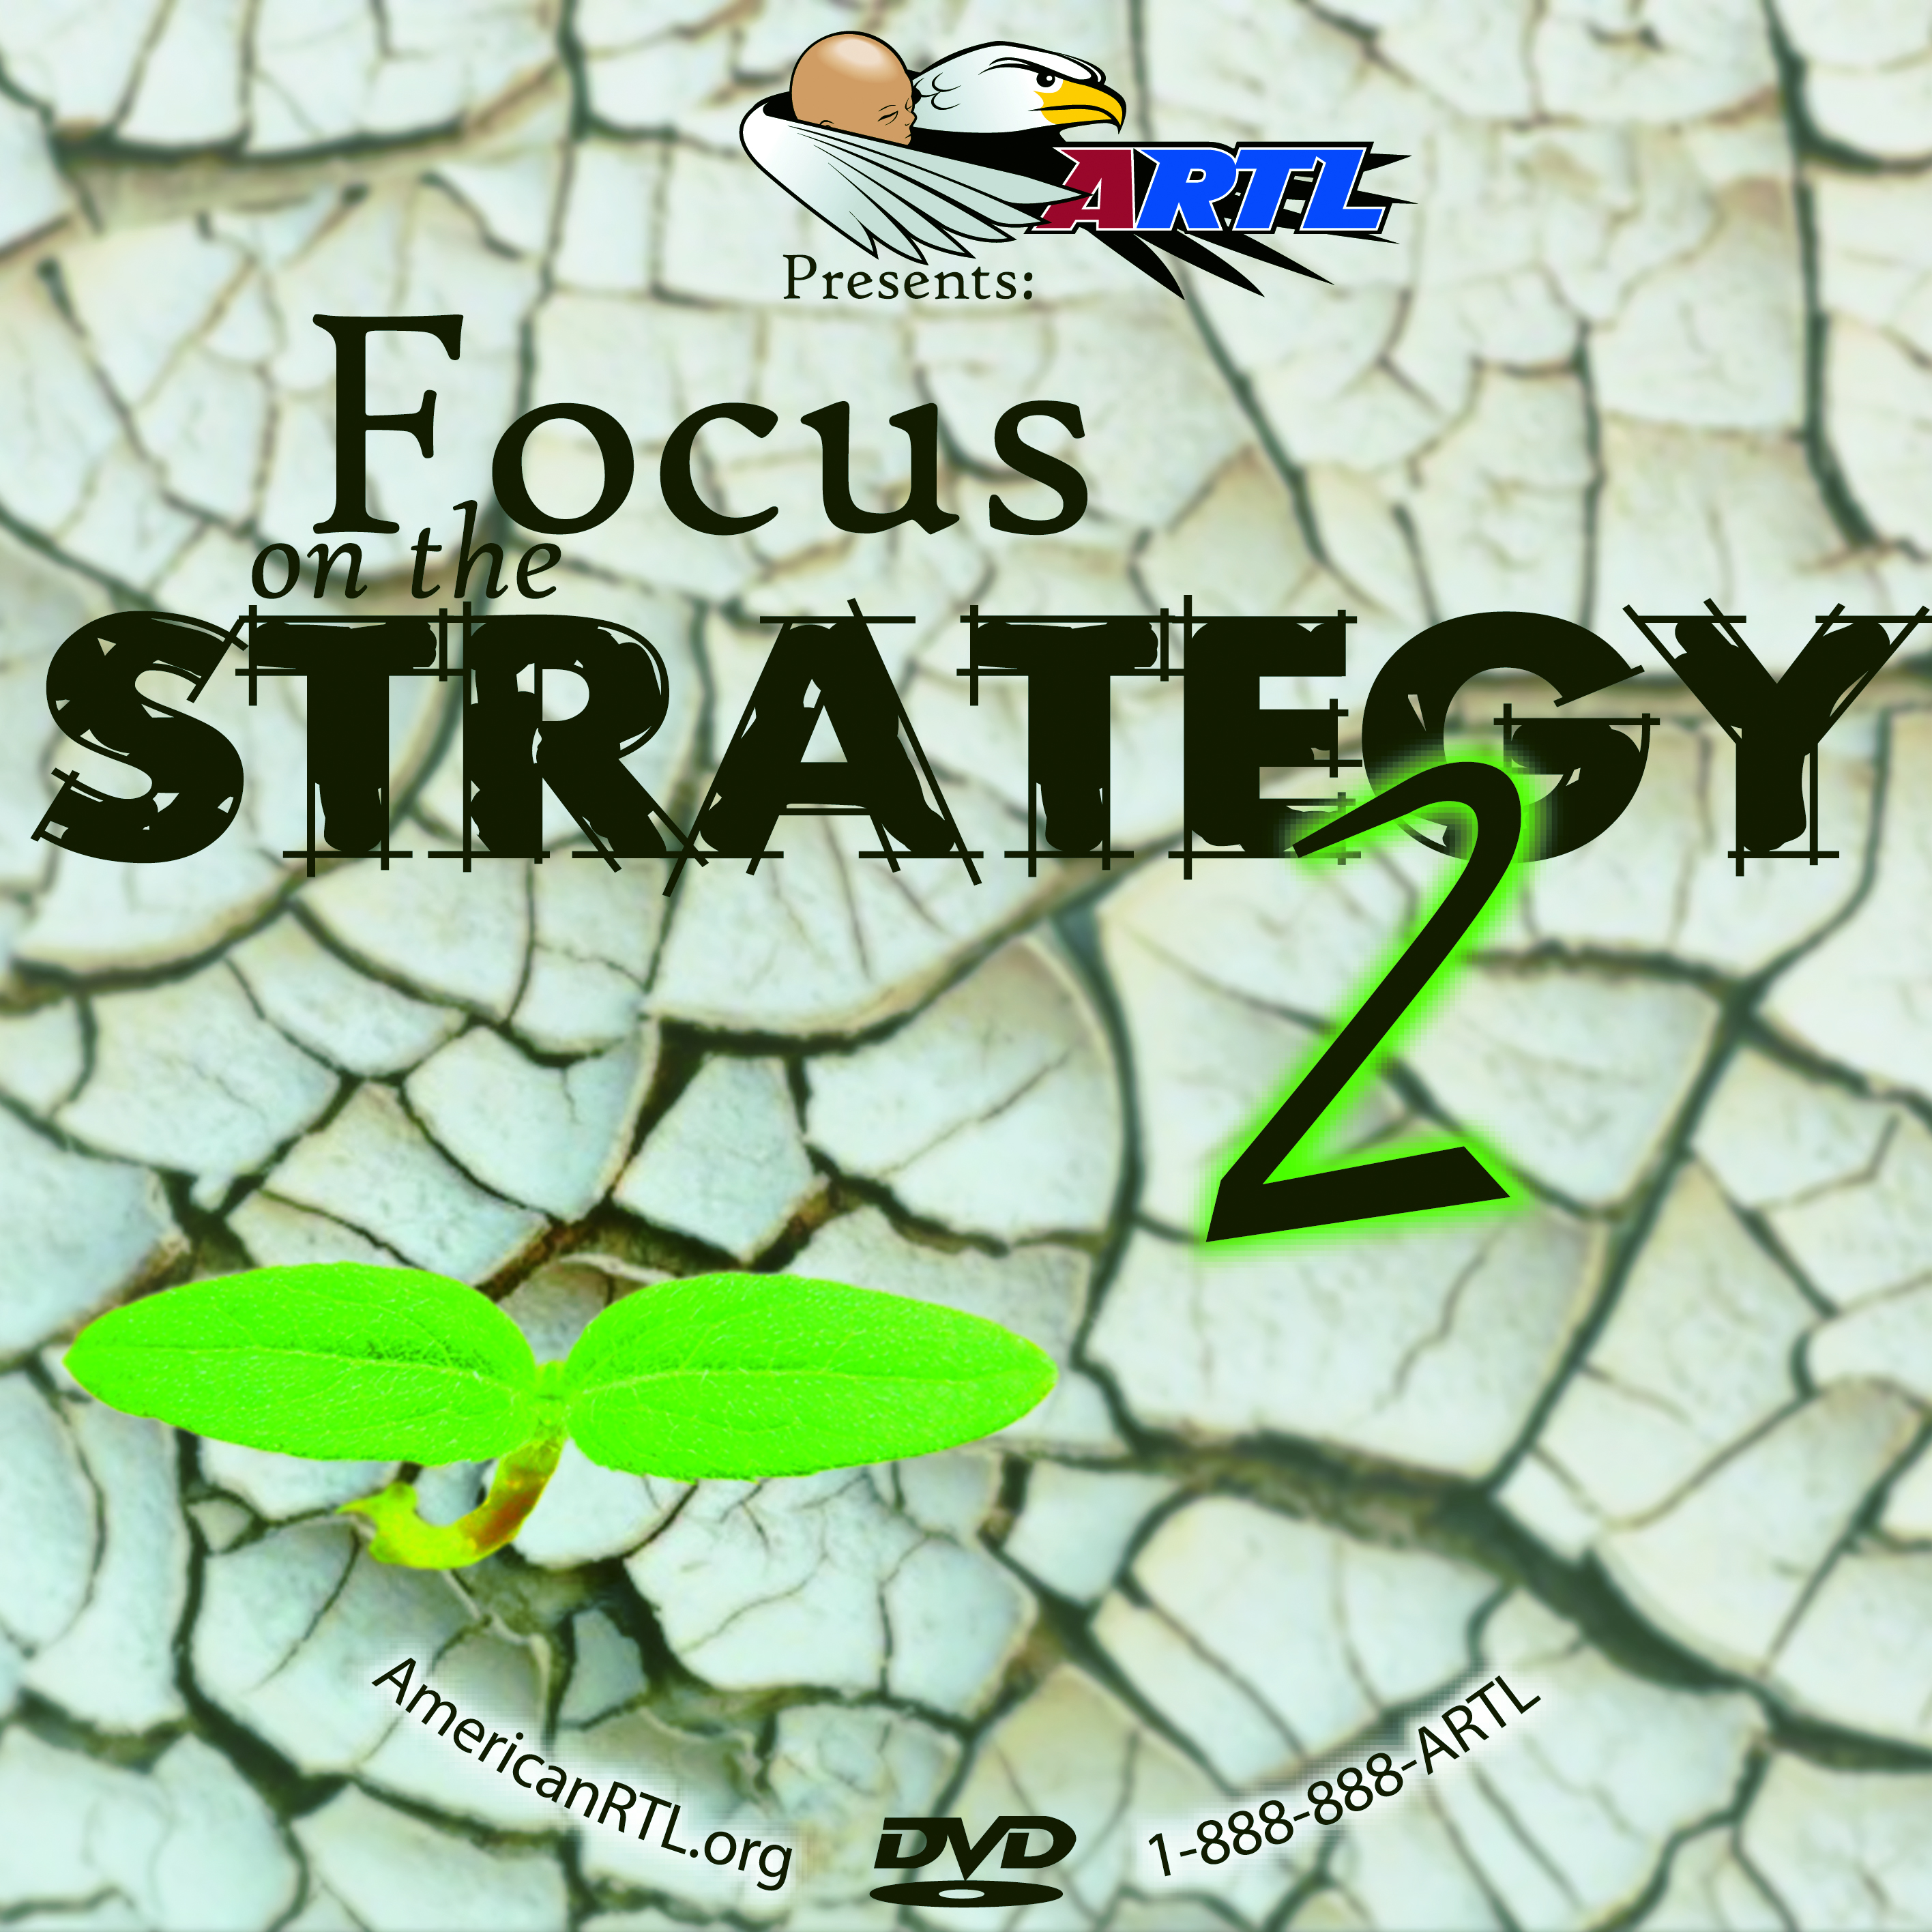 Focus%20on%20the%20Strategy%202_converted.jpg